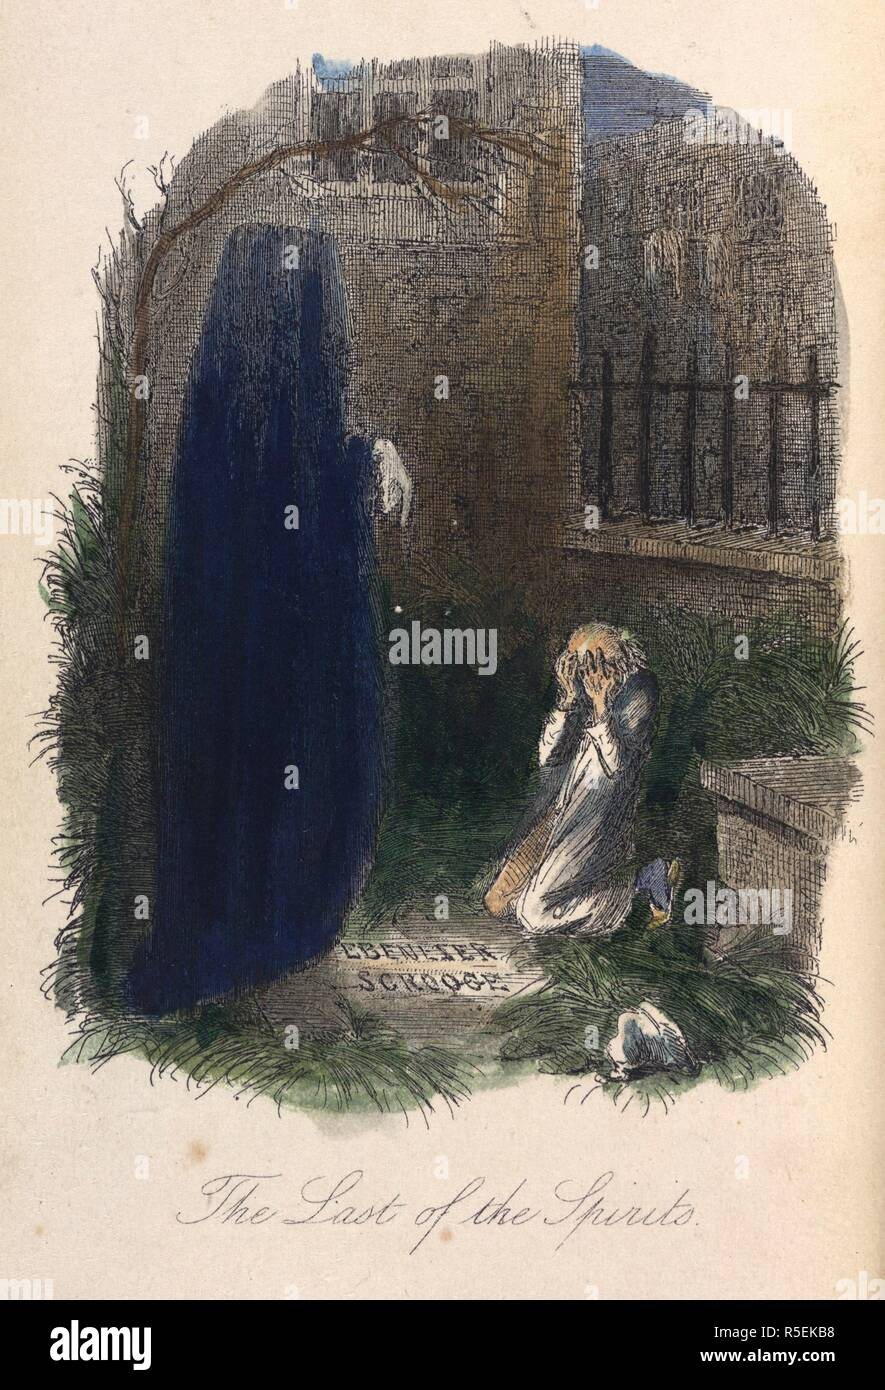 The Last of the Spirits. Ebenezer Scrooge visited by the last ghost. A Christmas Carol in prose. Chapman & Hall: London, 1843. Colour illustration from 'A Christmas Carol in prose. Being a Ghost-story of Christmas', by Charles Dickens, With illustrations by John Leech. Source: C.58.b.7, opposite 151. Language: English. - Stock Image